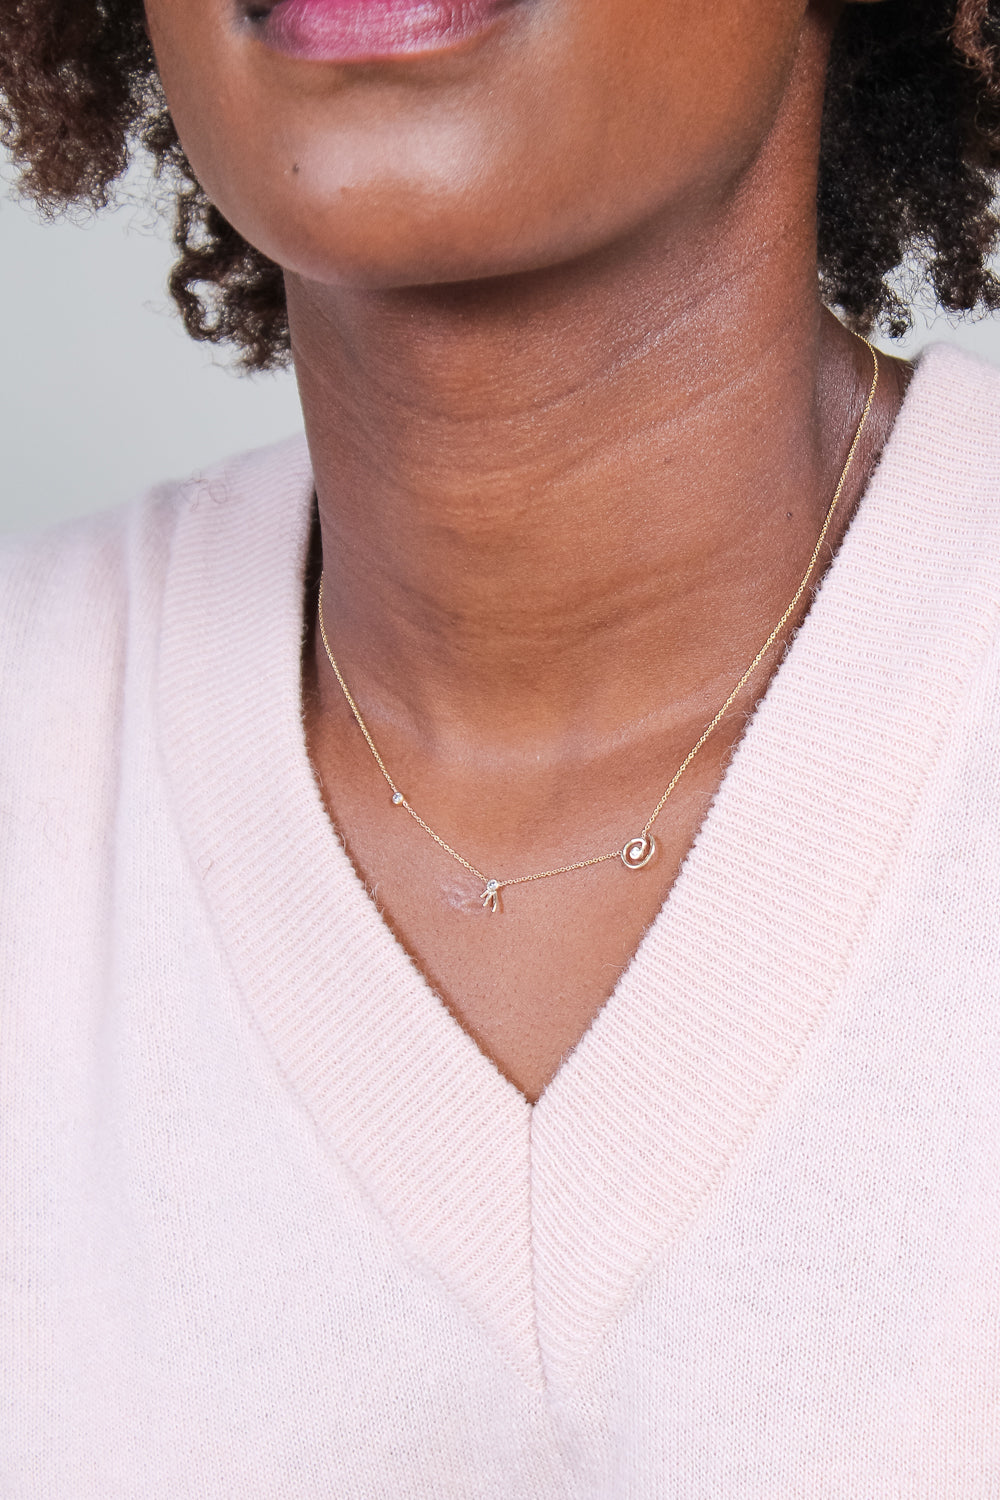 Dot Dot Necklace with Three Diamonds